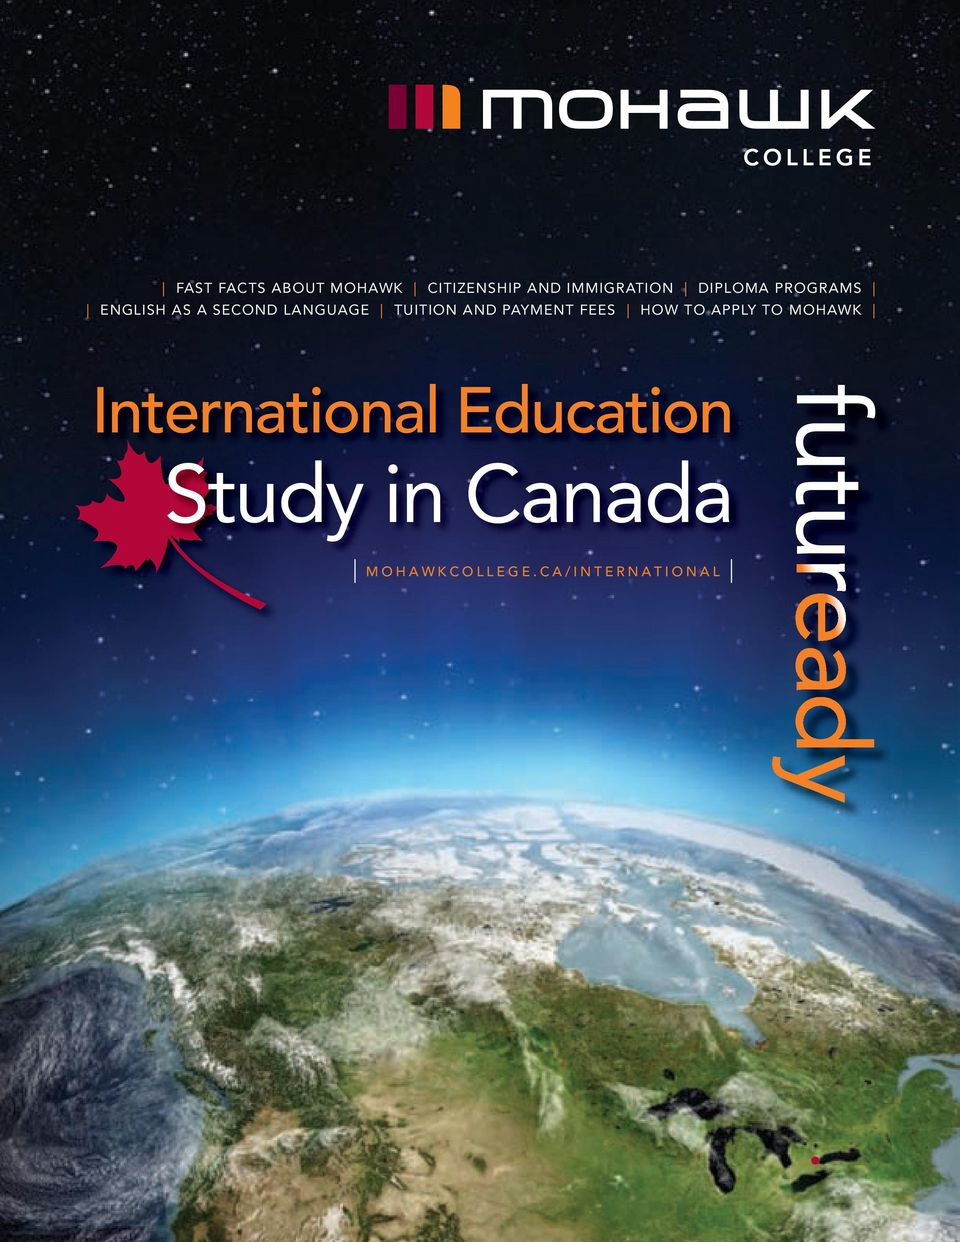 FeeS HOW TO AppLy TO MOHAWK international education Study in